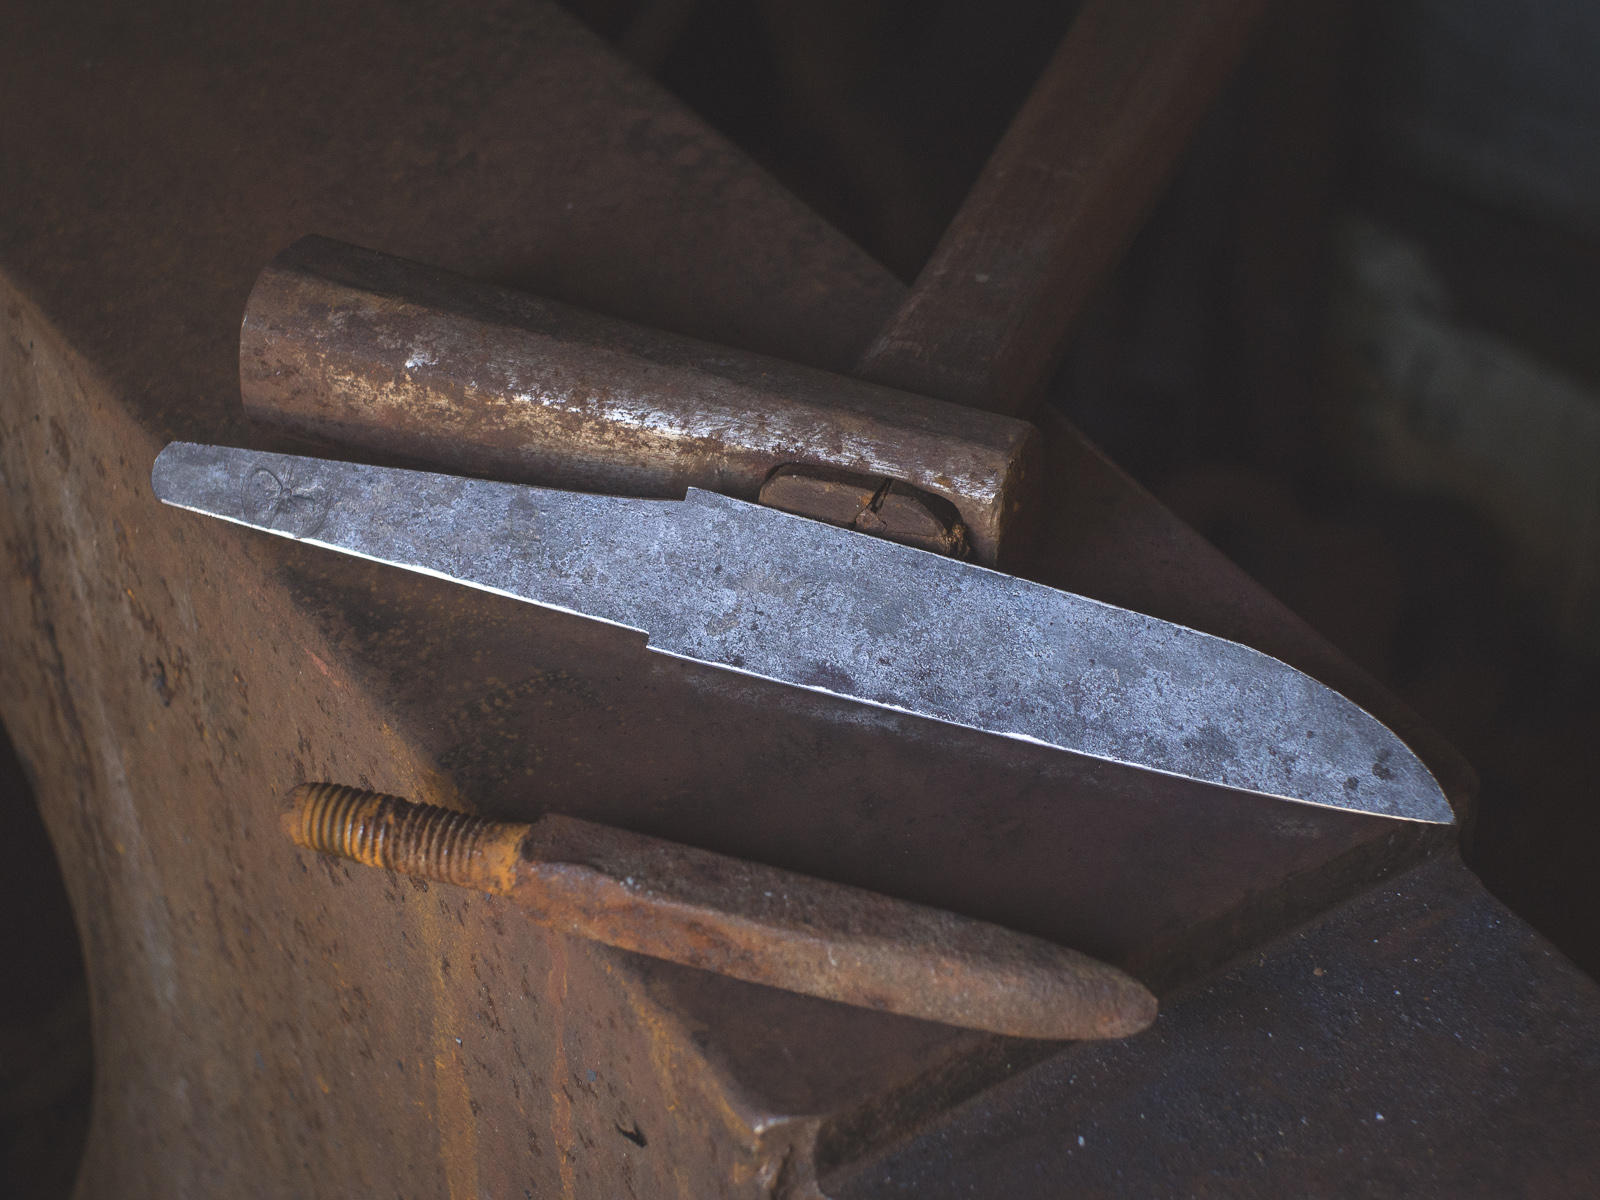 Island Blacksmith: Charcoal forged knives from reclaimed farm equipment.